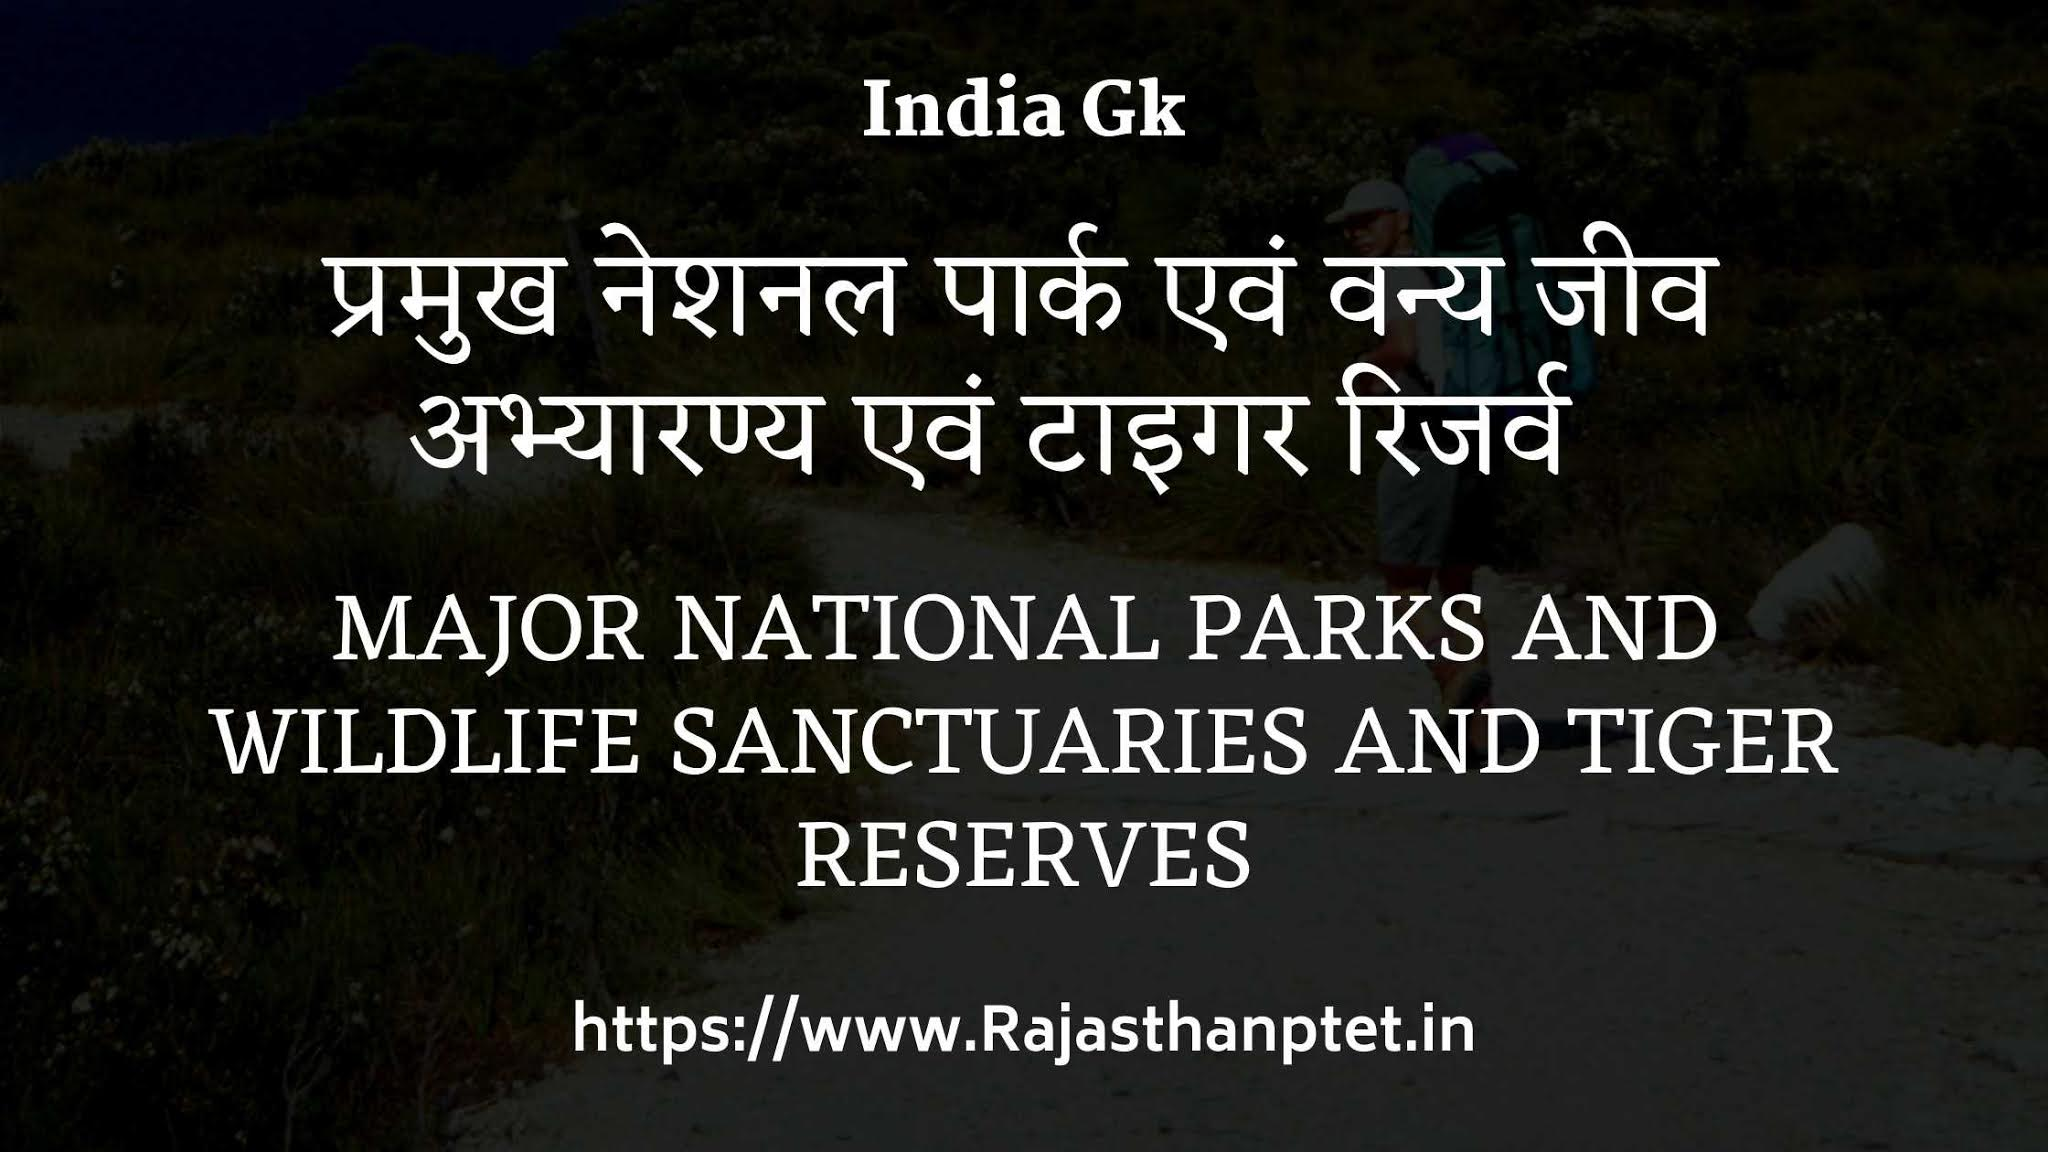 Major National Parks and Wildlife Sanctuaries and Tiger Reserves